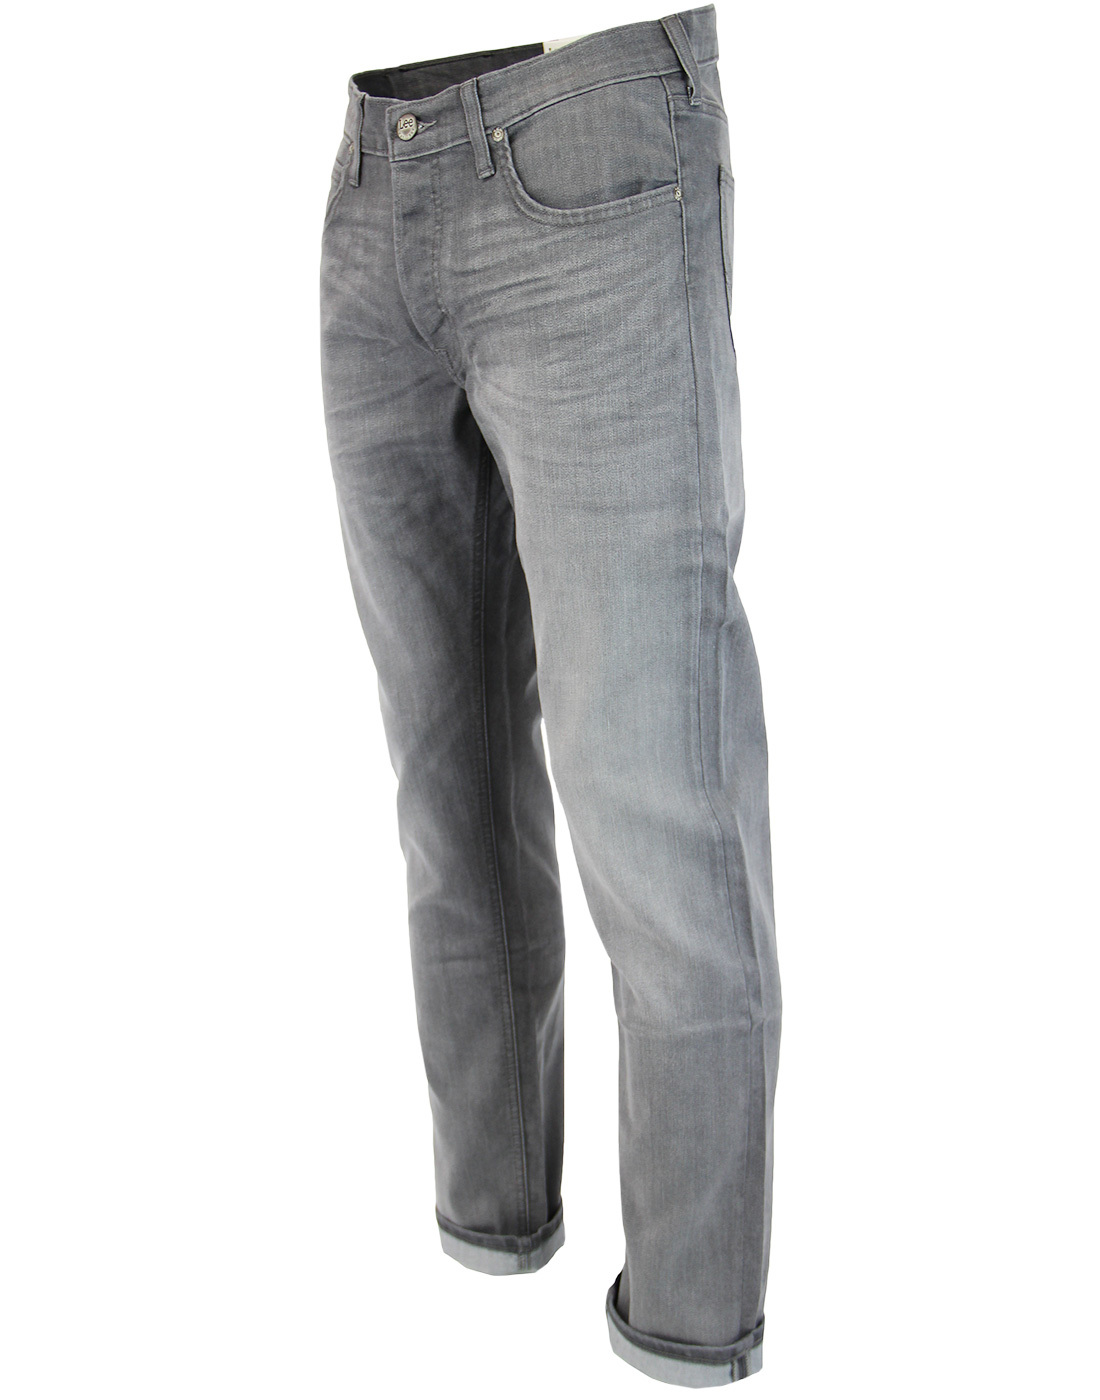 7ecebee0 LEE Daren Retro Slim Leg Denim Jeans in Storm Grey